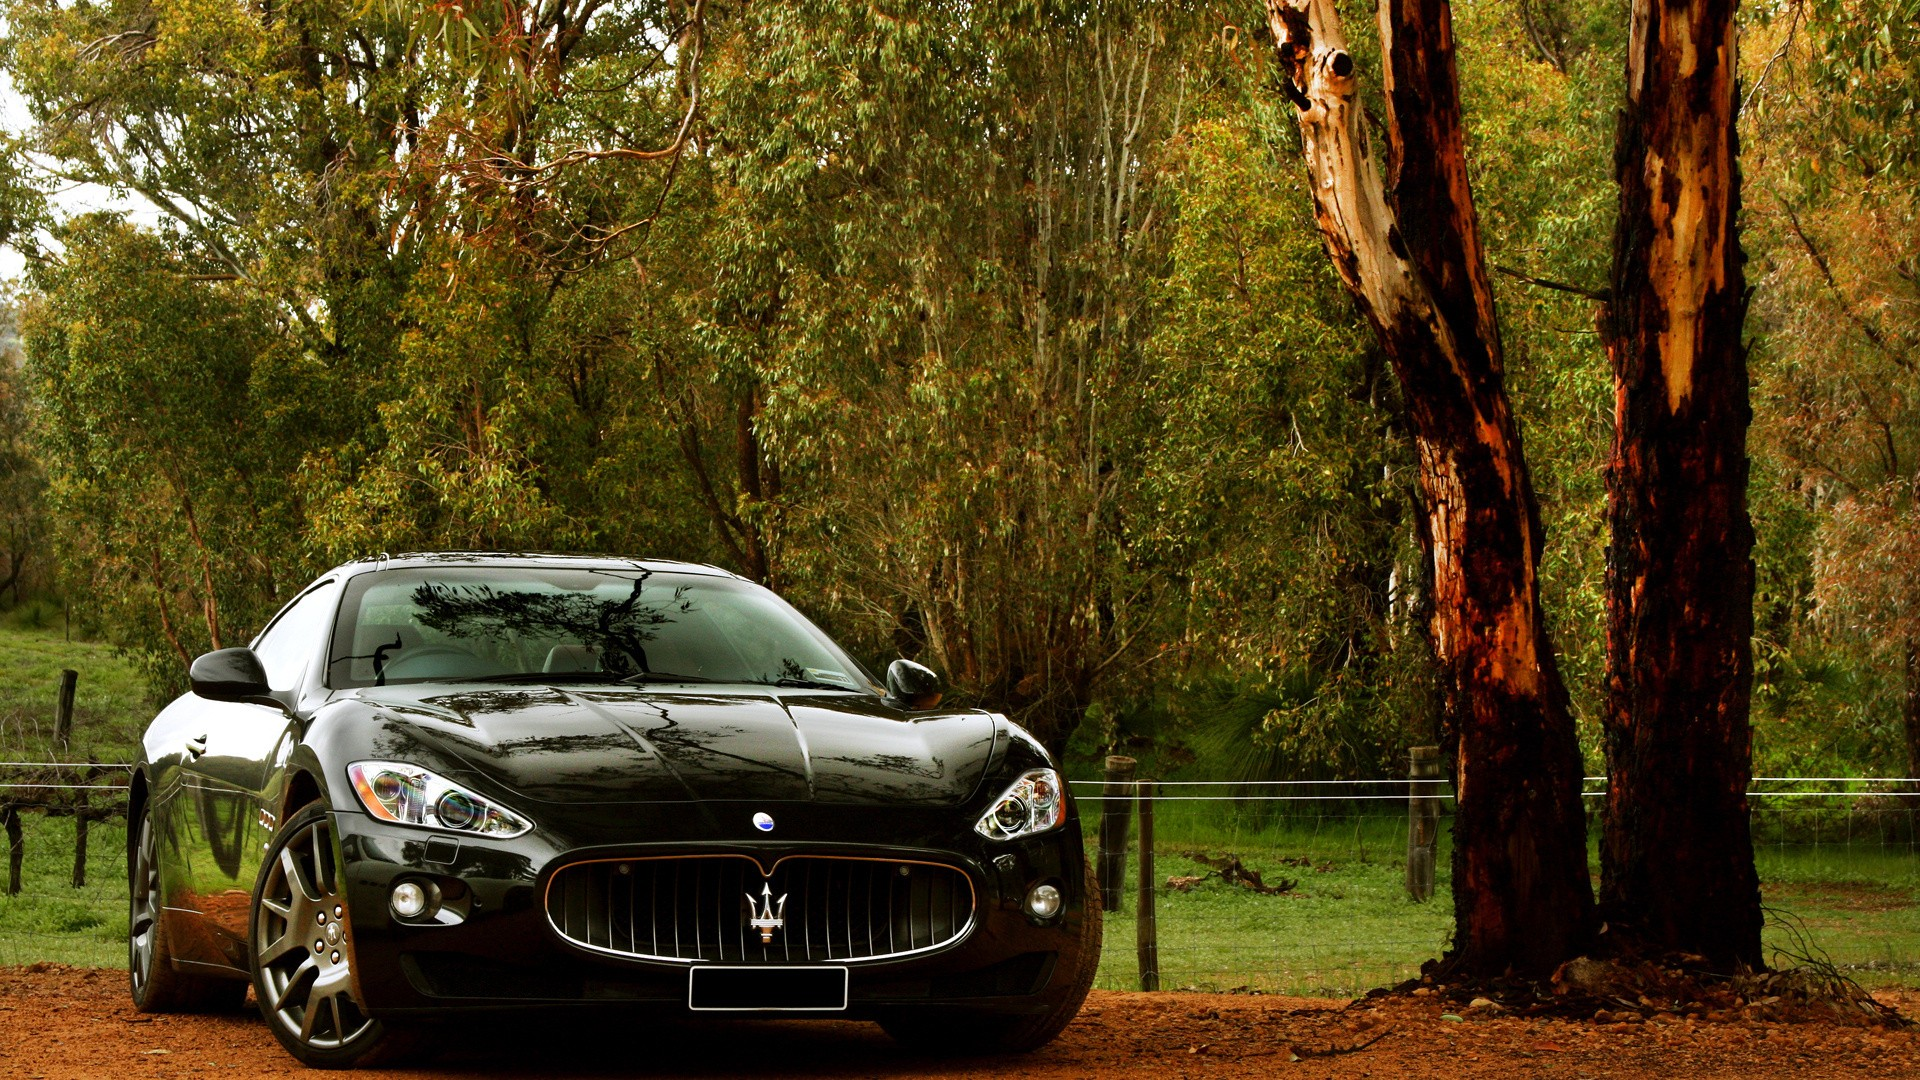 maserati wallpaper 1920x1080 Wallpapers HD 1080p Desktop Wallpapers 1920x1080